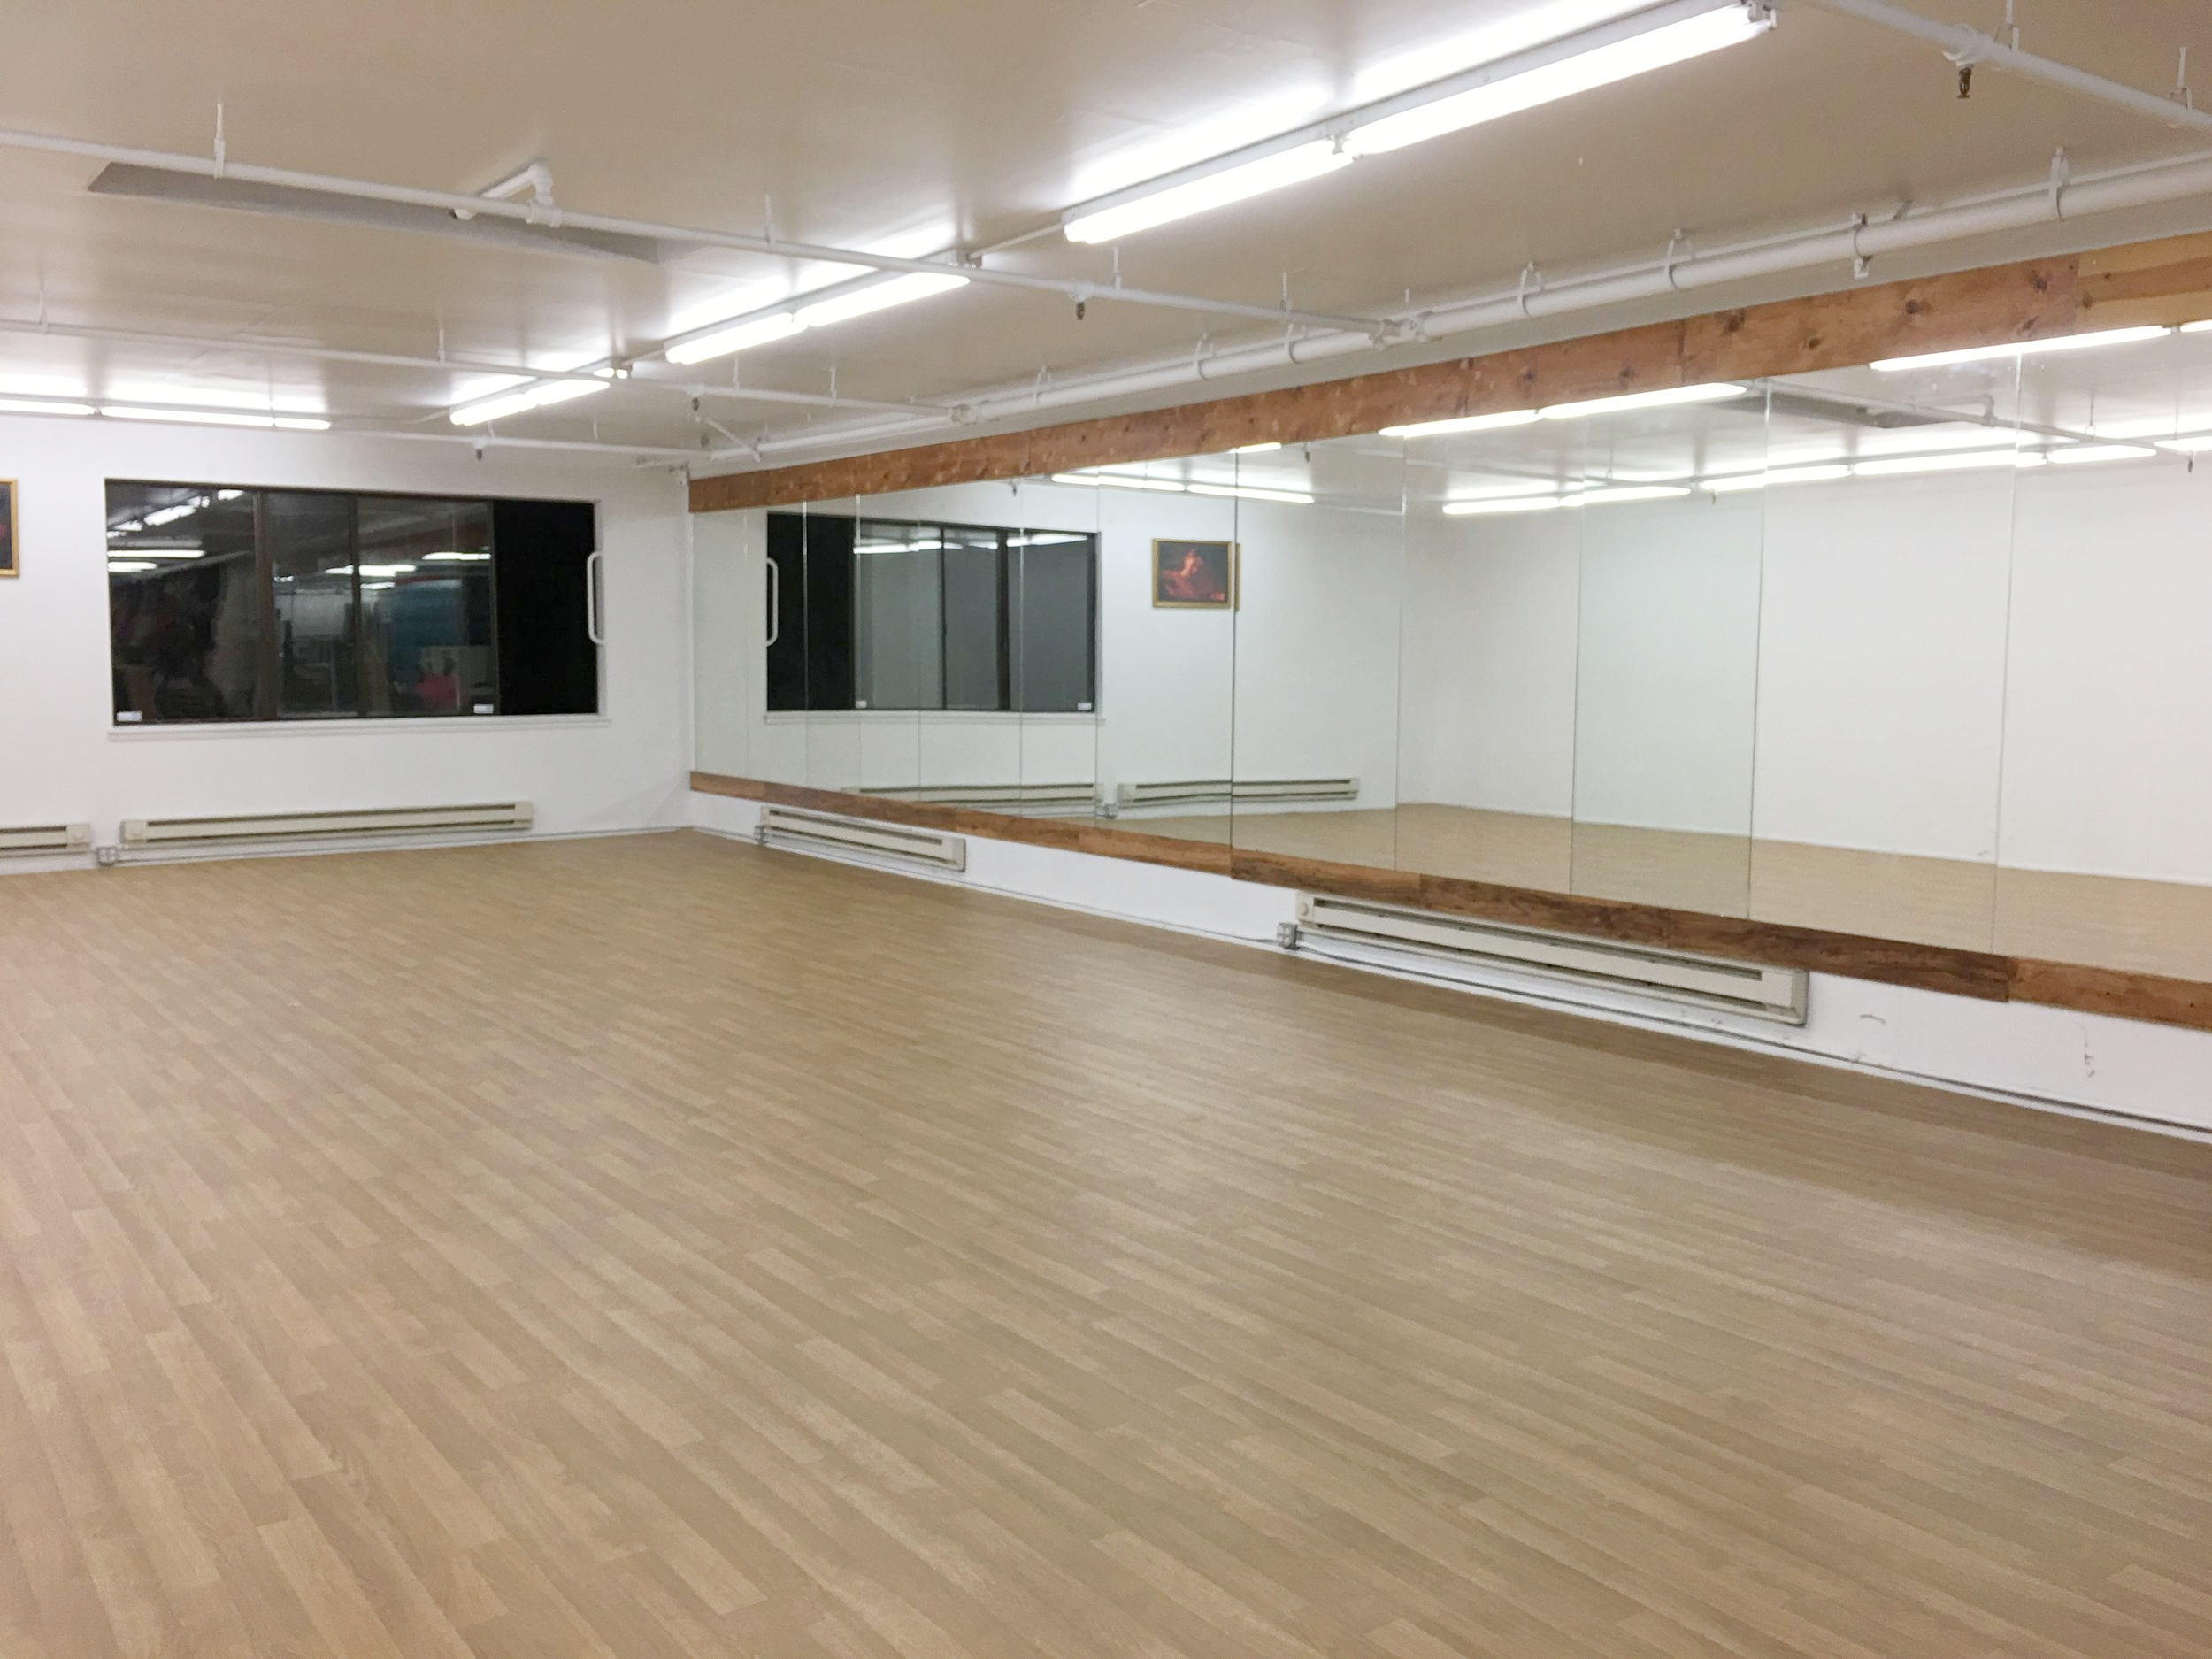 Dance Studio - approx. 1,500 sq. ft